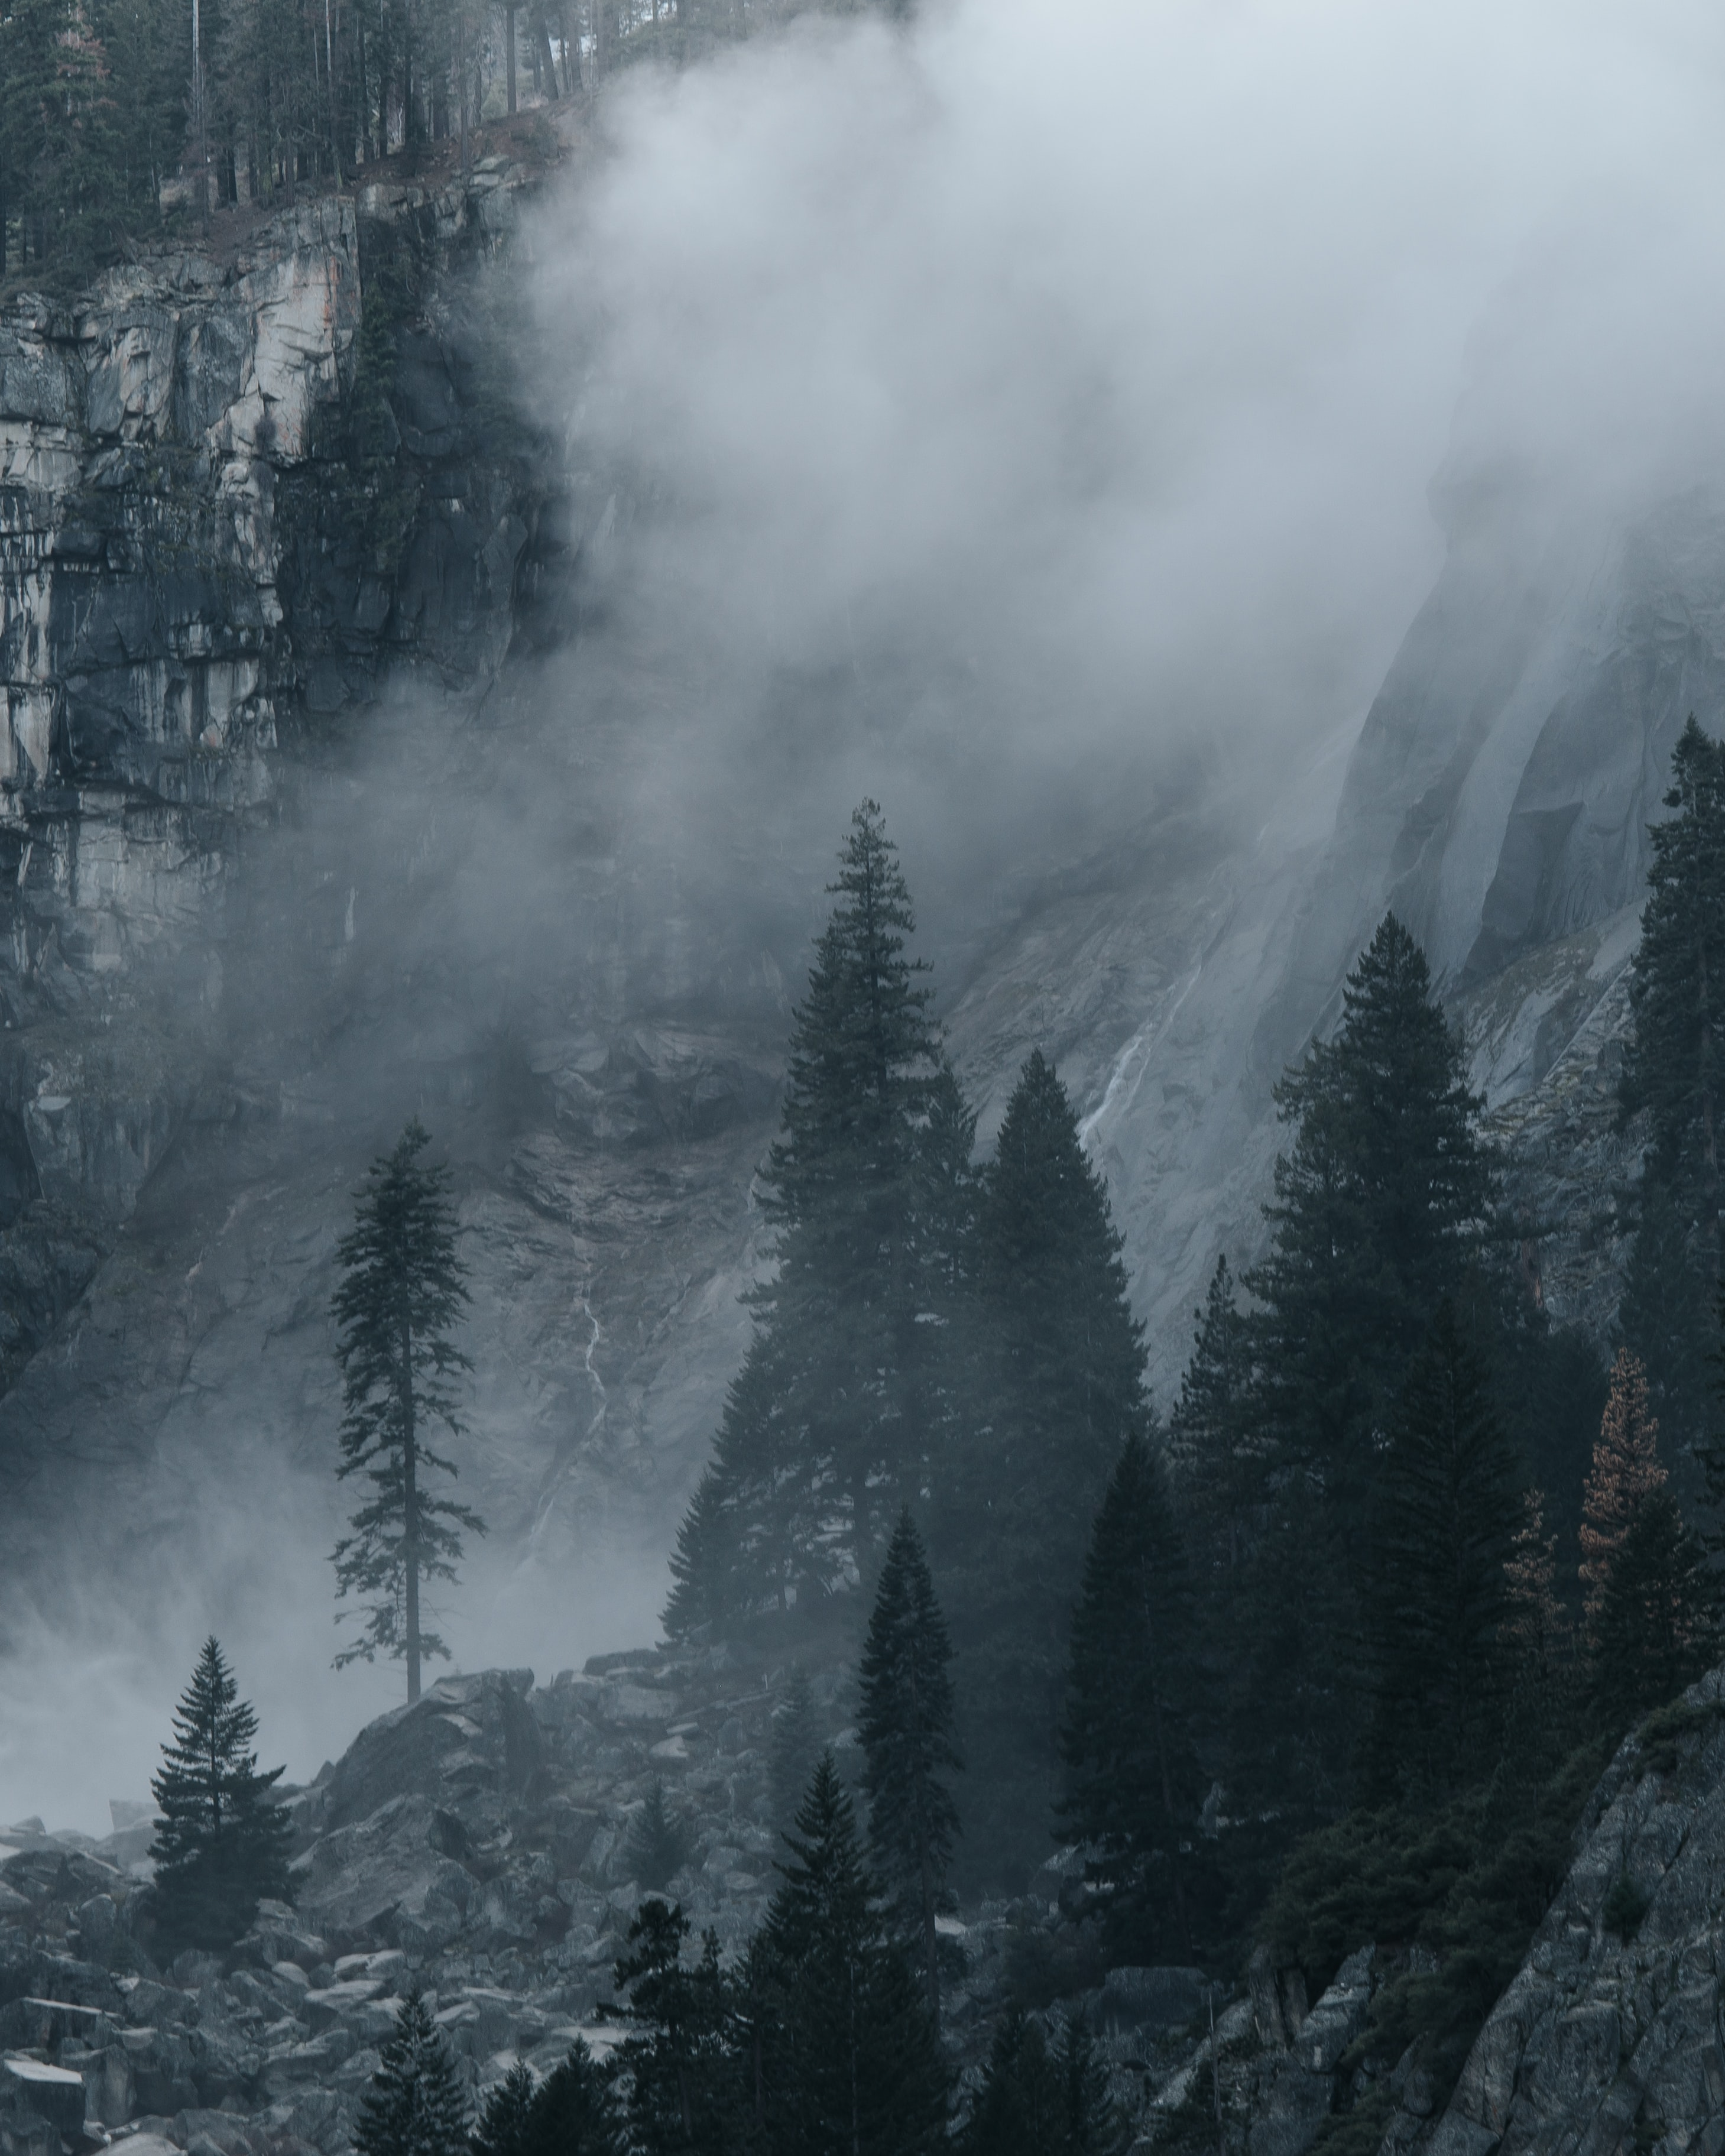 snowy mountain with fogs